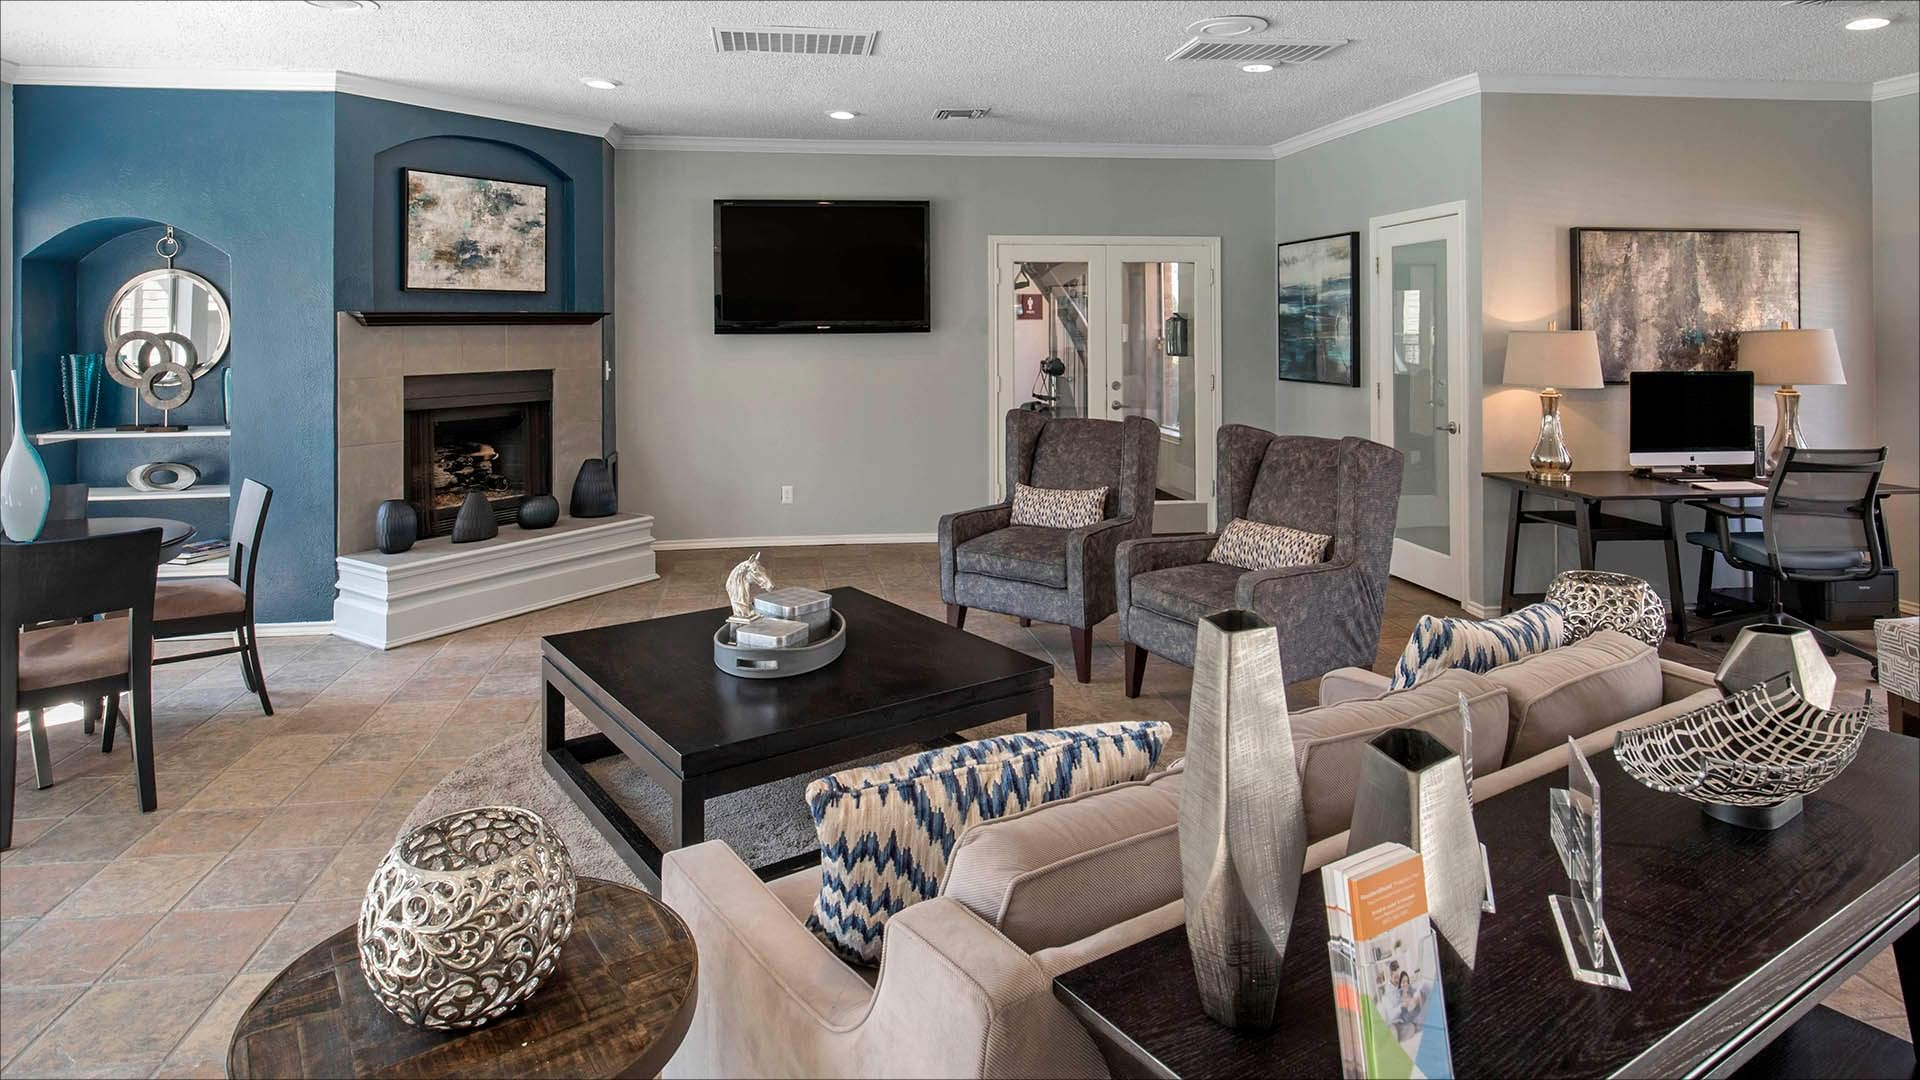 fireplace, workspace and social seating areas in bright clubhouse